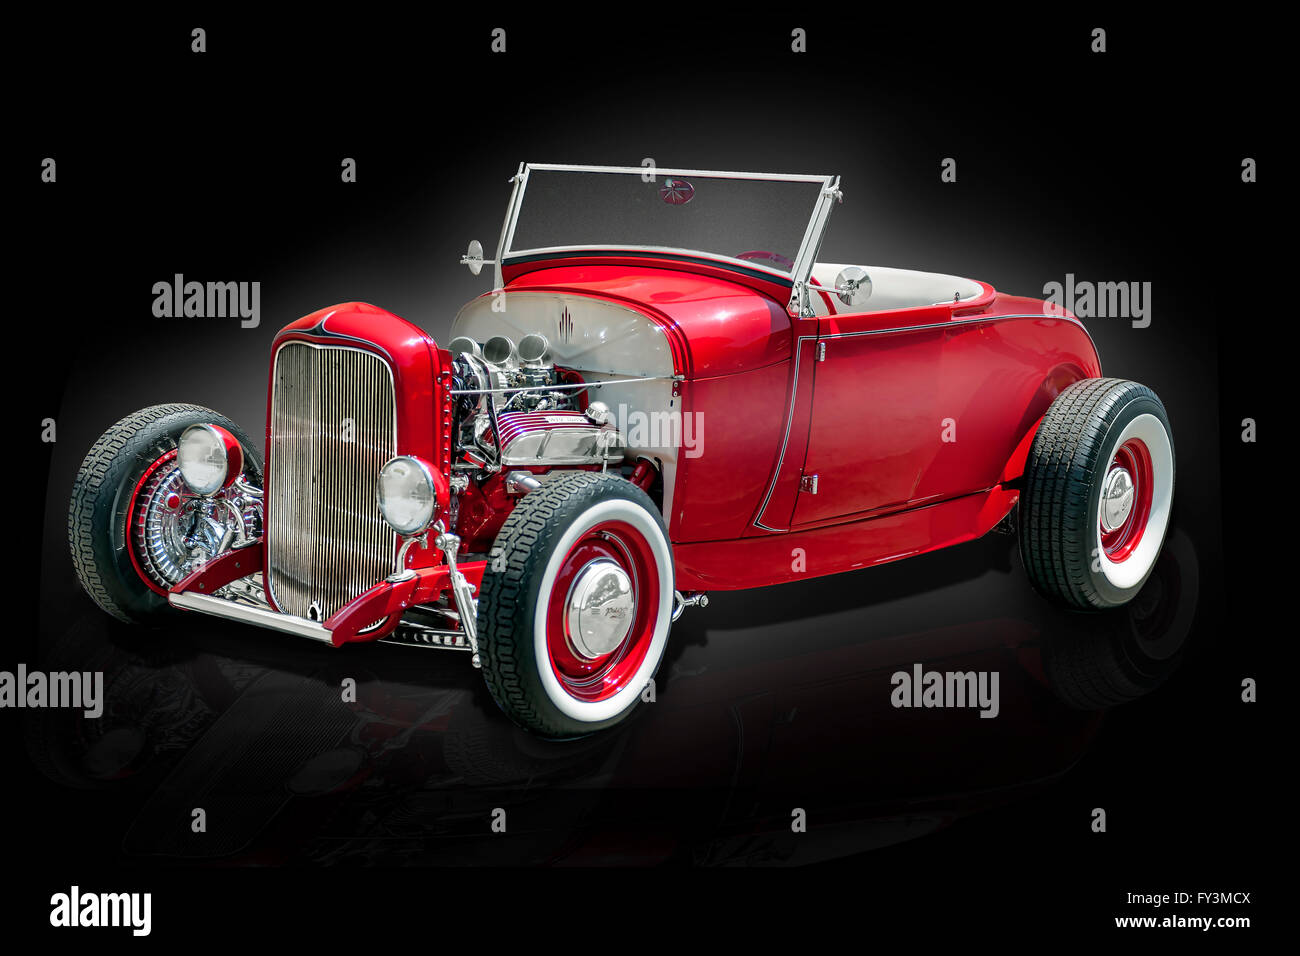 A 1932 Ford roadster Custom Hot rod - Stock Image